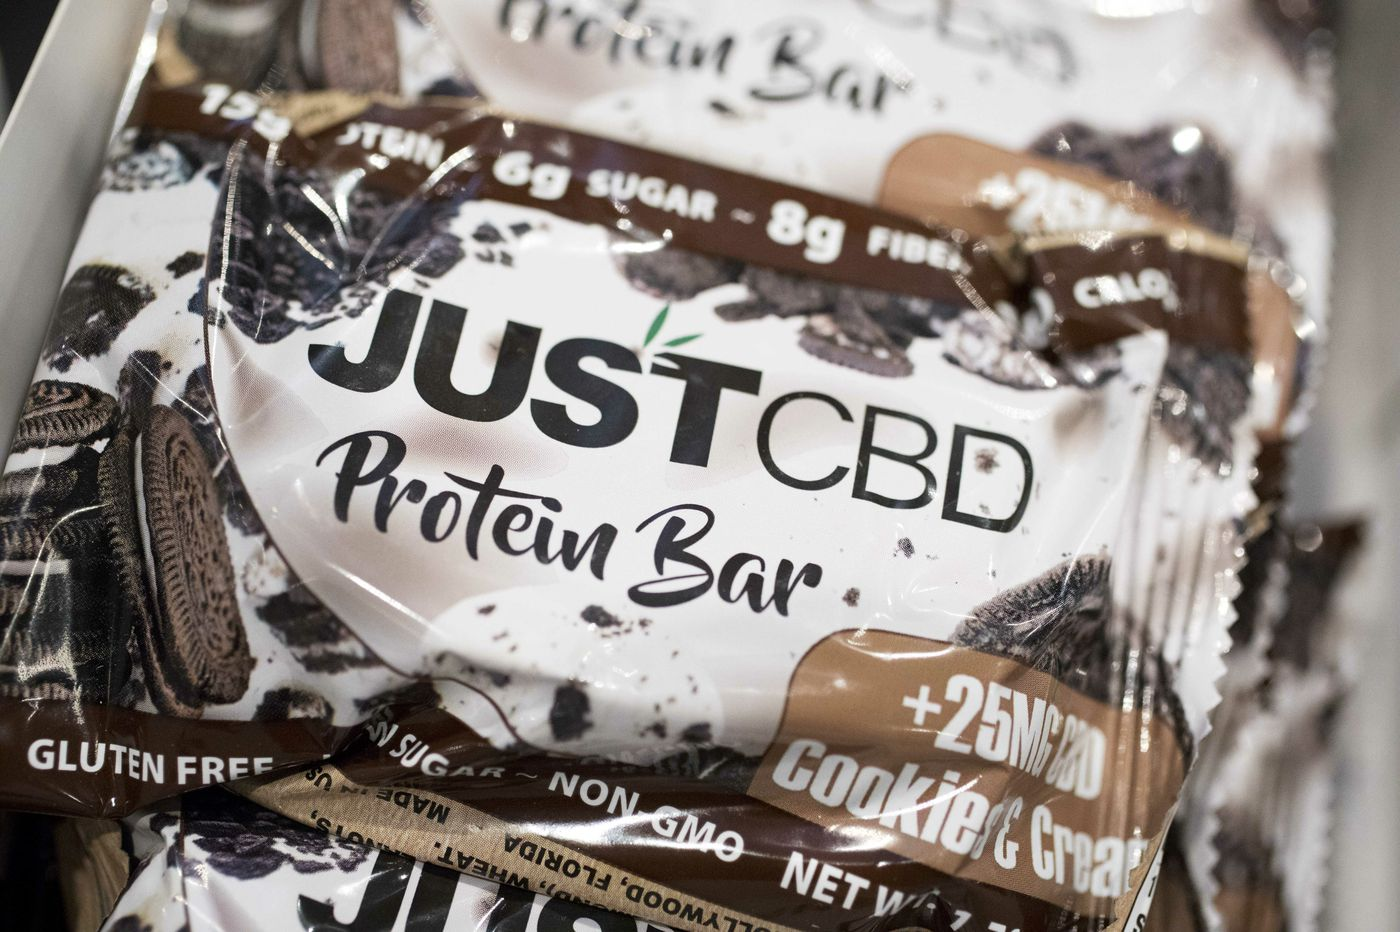 FDA holds hearings to determine legality of CBD in foods